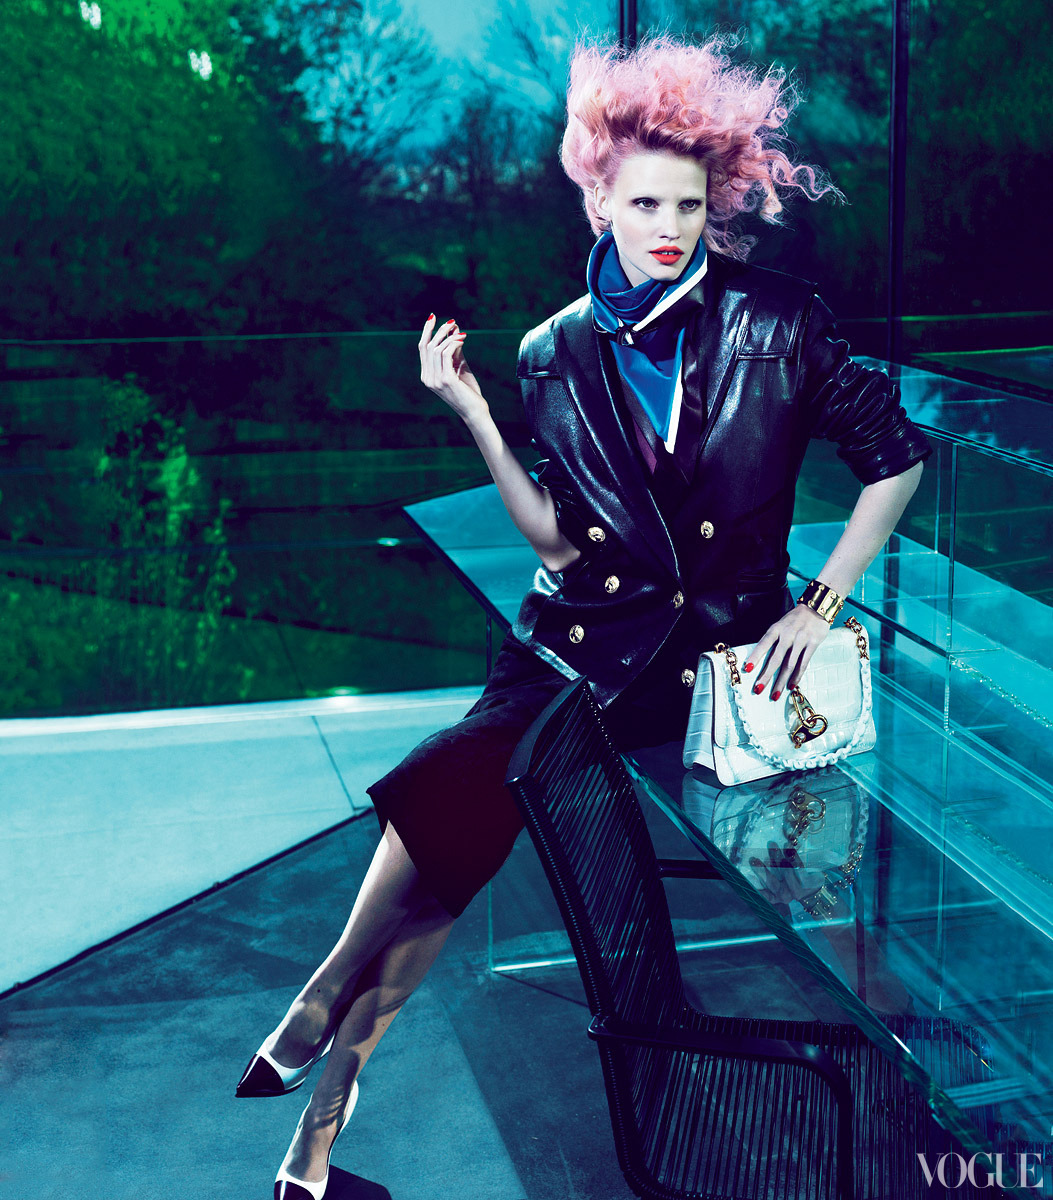 Lara Stone @ IMG Models  Vogue, July 2012  Editorial - 'Risky Business'  Leather Jacket - Balmain  Skirt - Maxfield, LA Cuffs - Tom Ford  Shoes - Céline  Photo Credits - Mert & Marcus